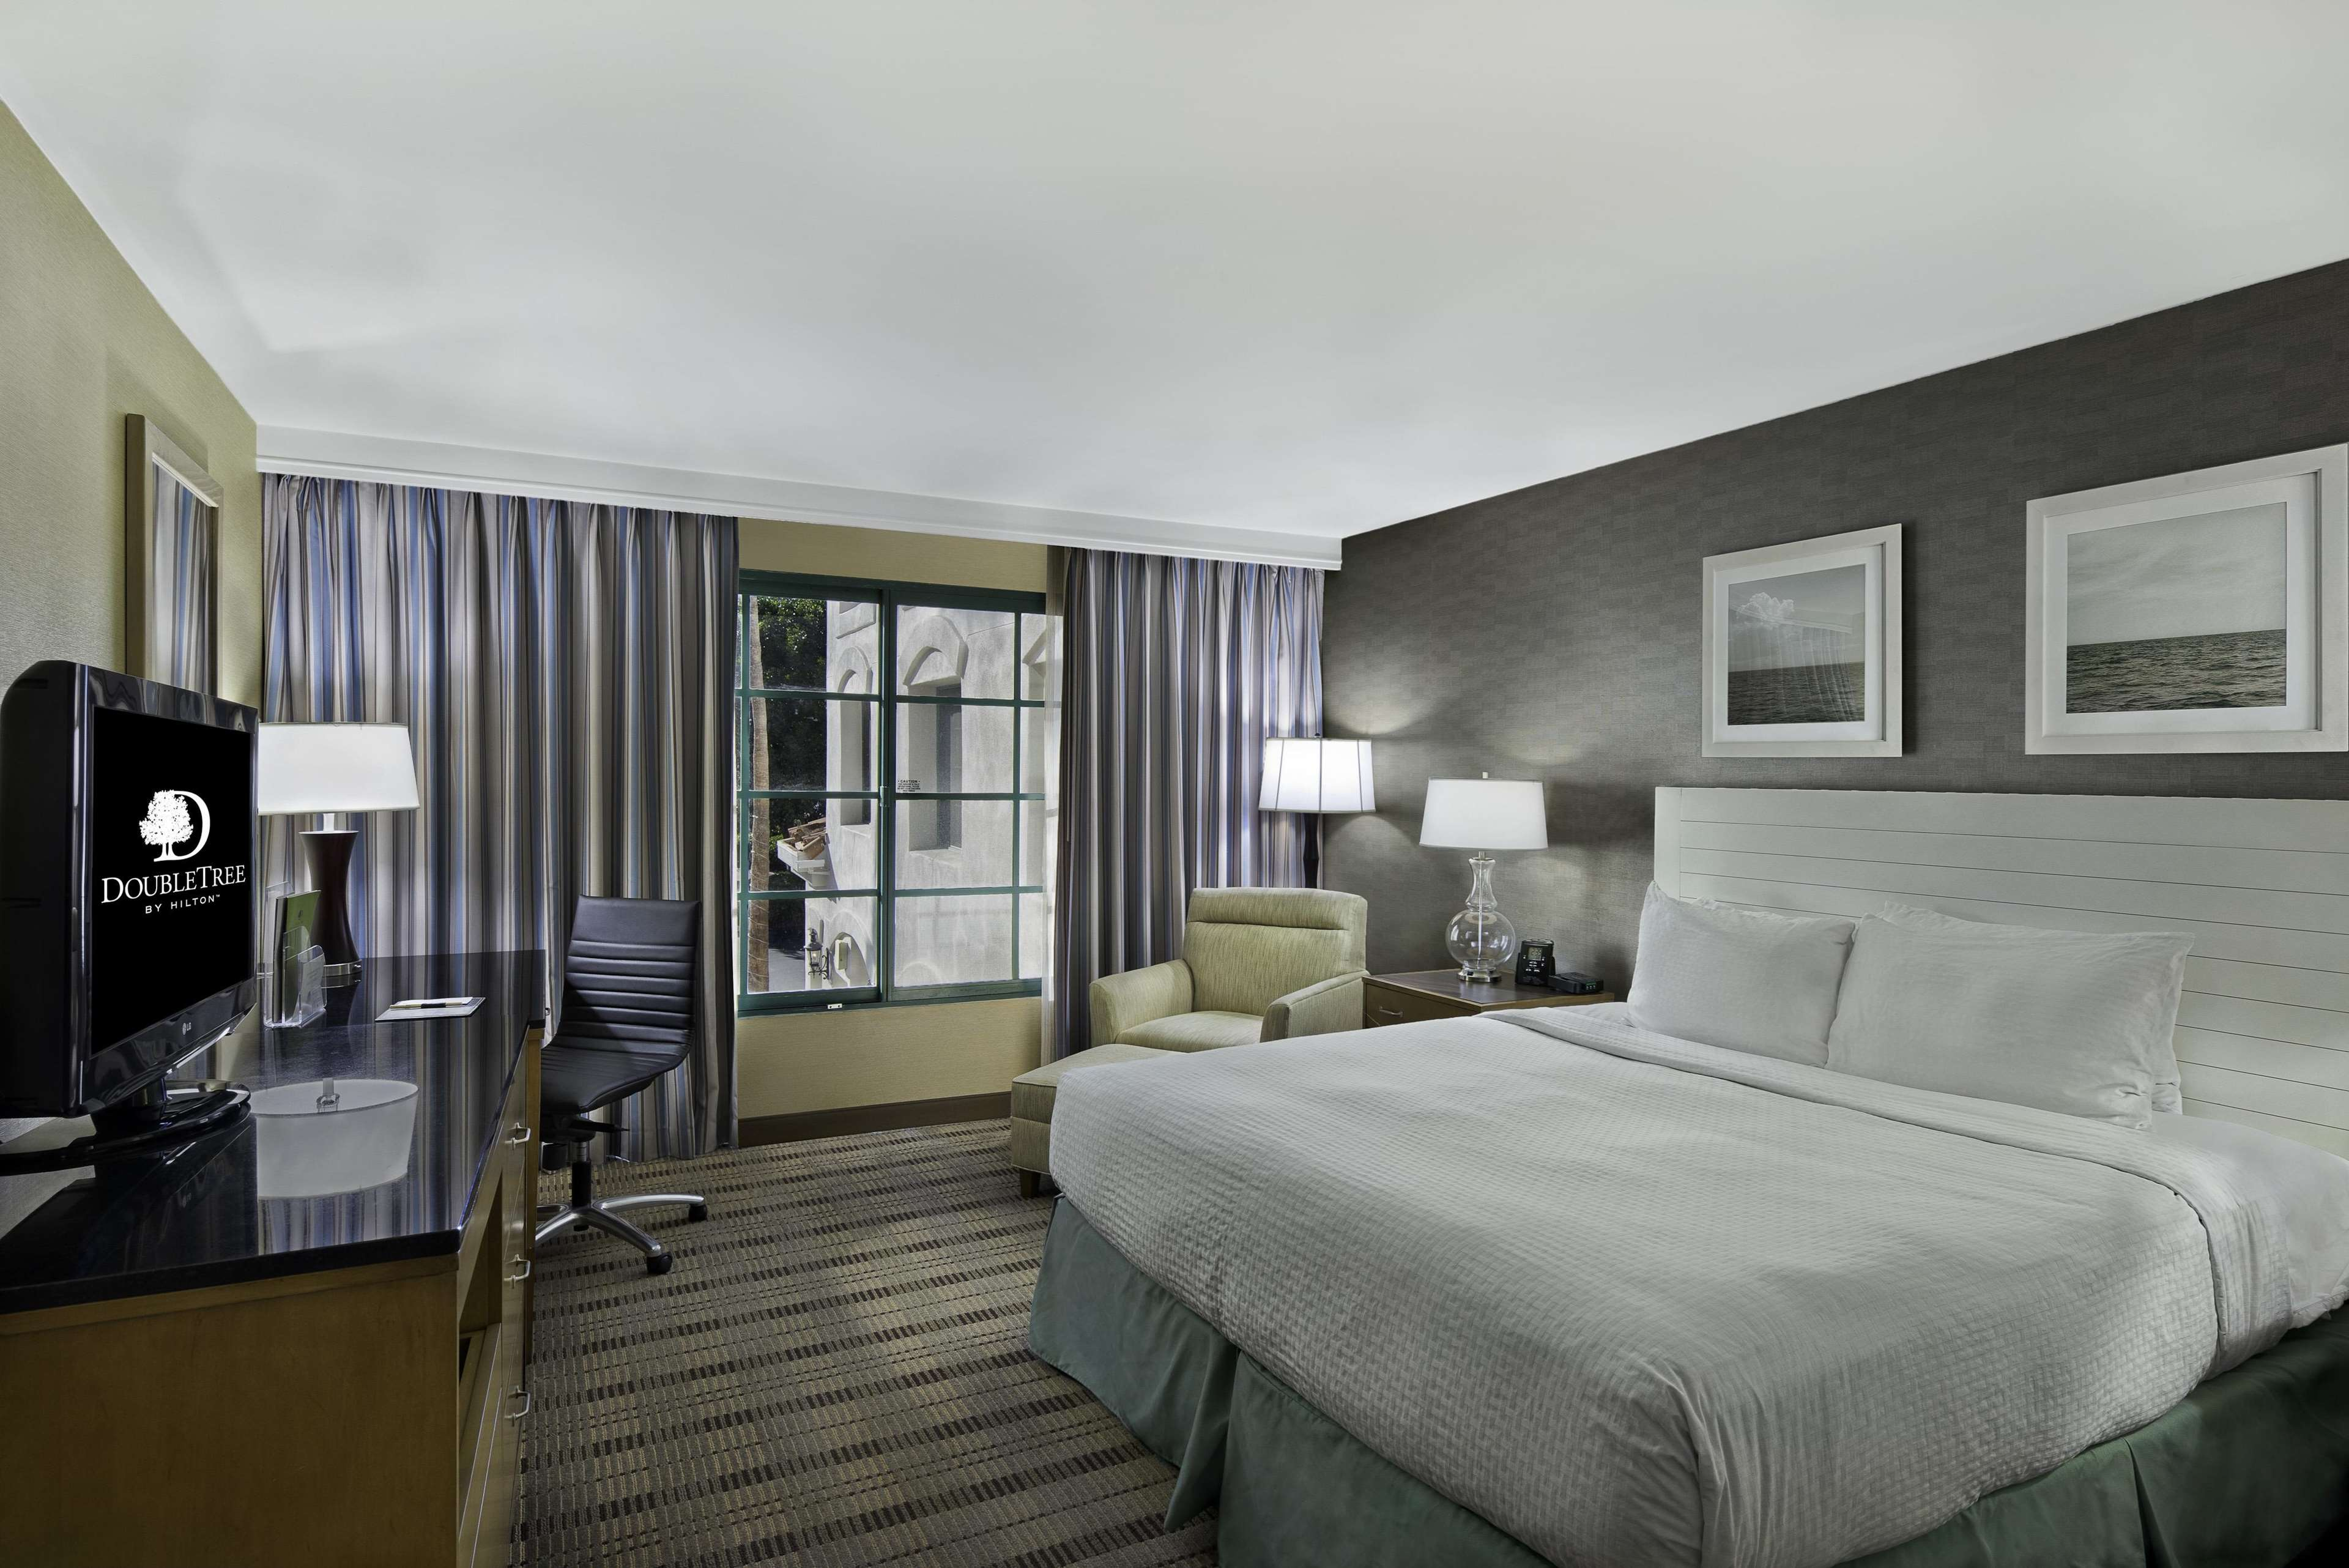 DoubleTree by Hilton Hotel San Pedro - Port of Los Angeles image 17